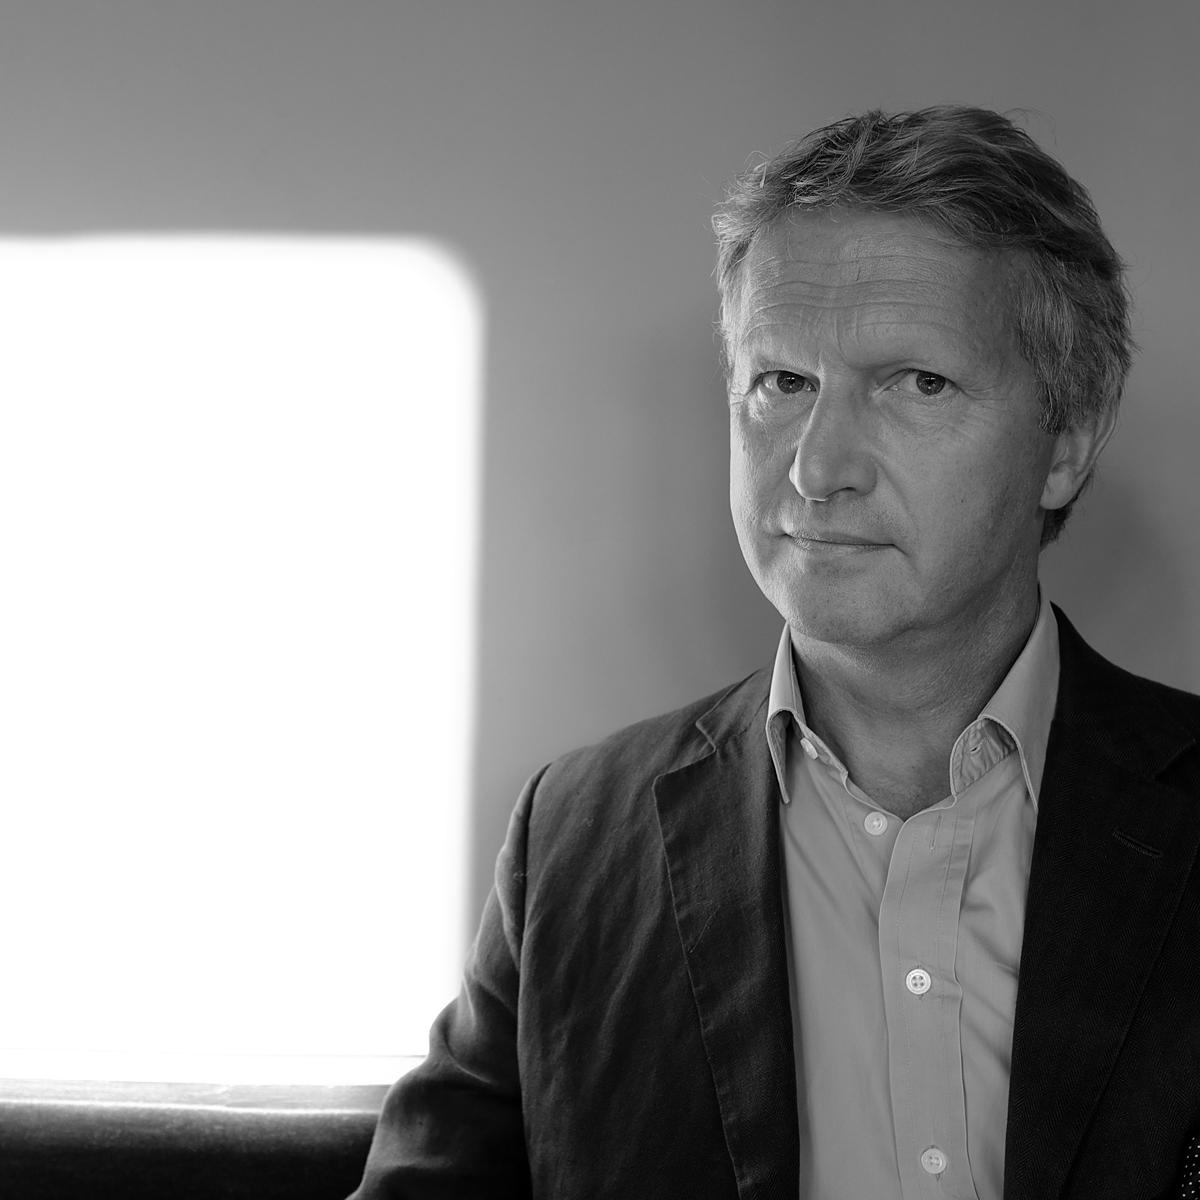 Black and white corporate photography for Studio of Art and Commerce London by Julian Hanford